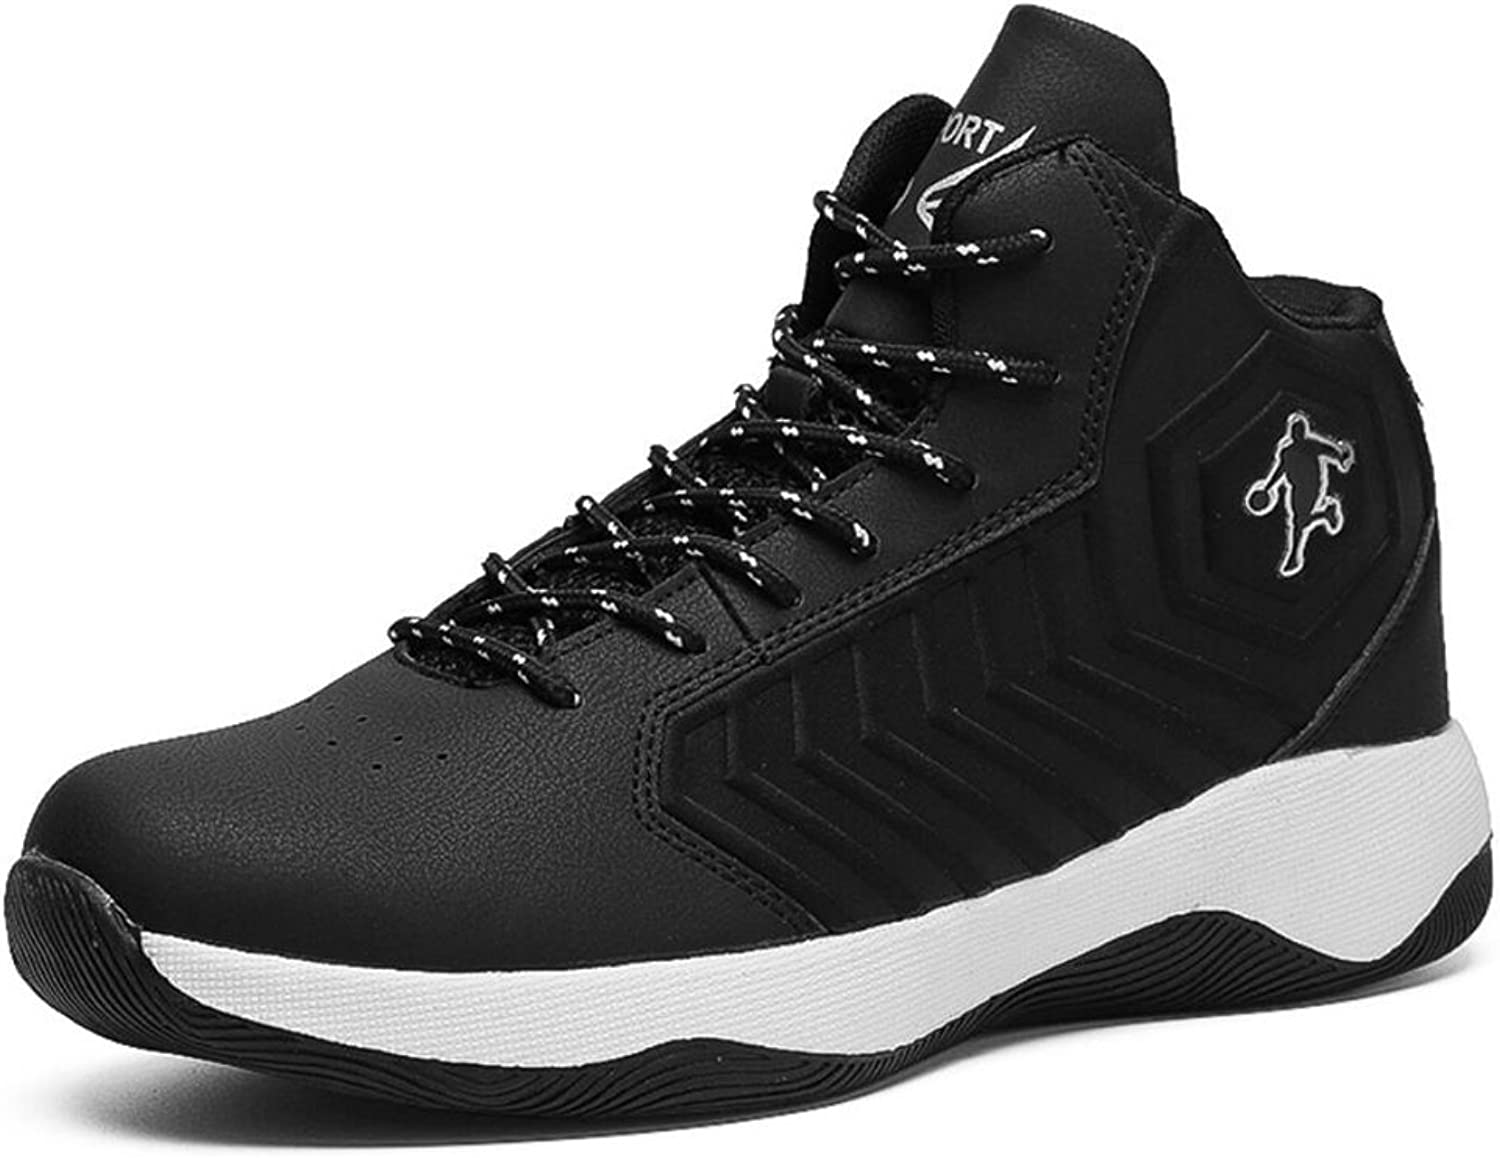 XUE Men's shoes Basketball shoes PU High-Top Sneakers Summer Comfort Lace-up shoes Outdoor Hiking shoes Travel Personality Cool (color   B, Size   42)